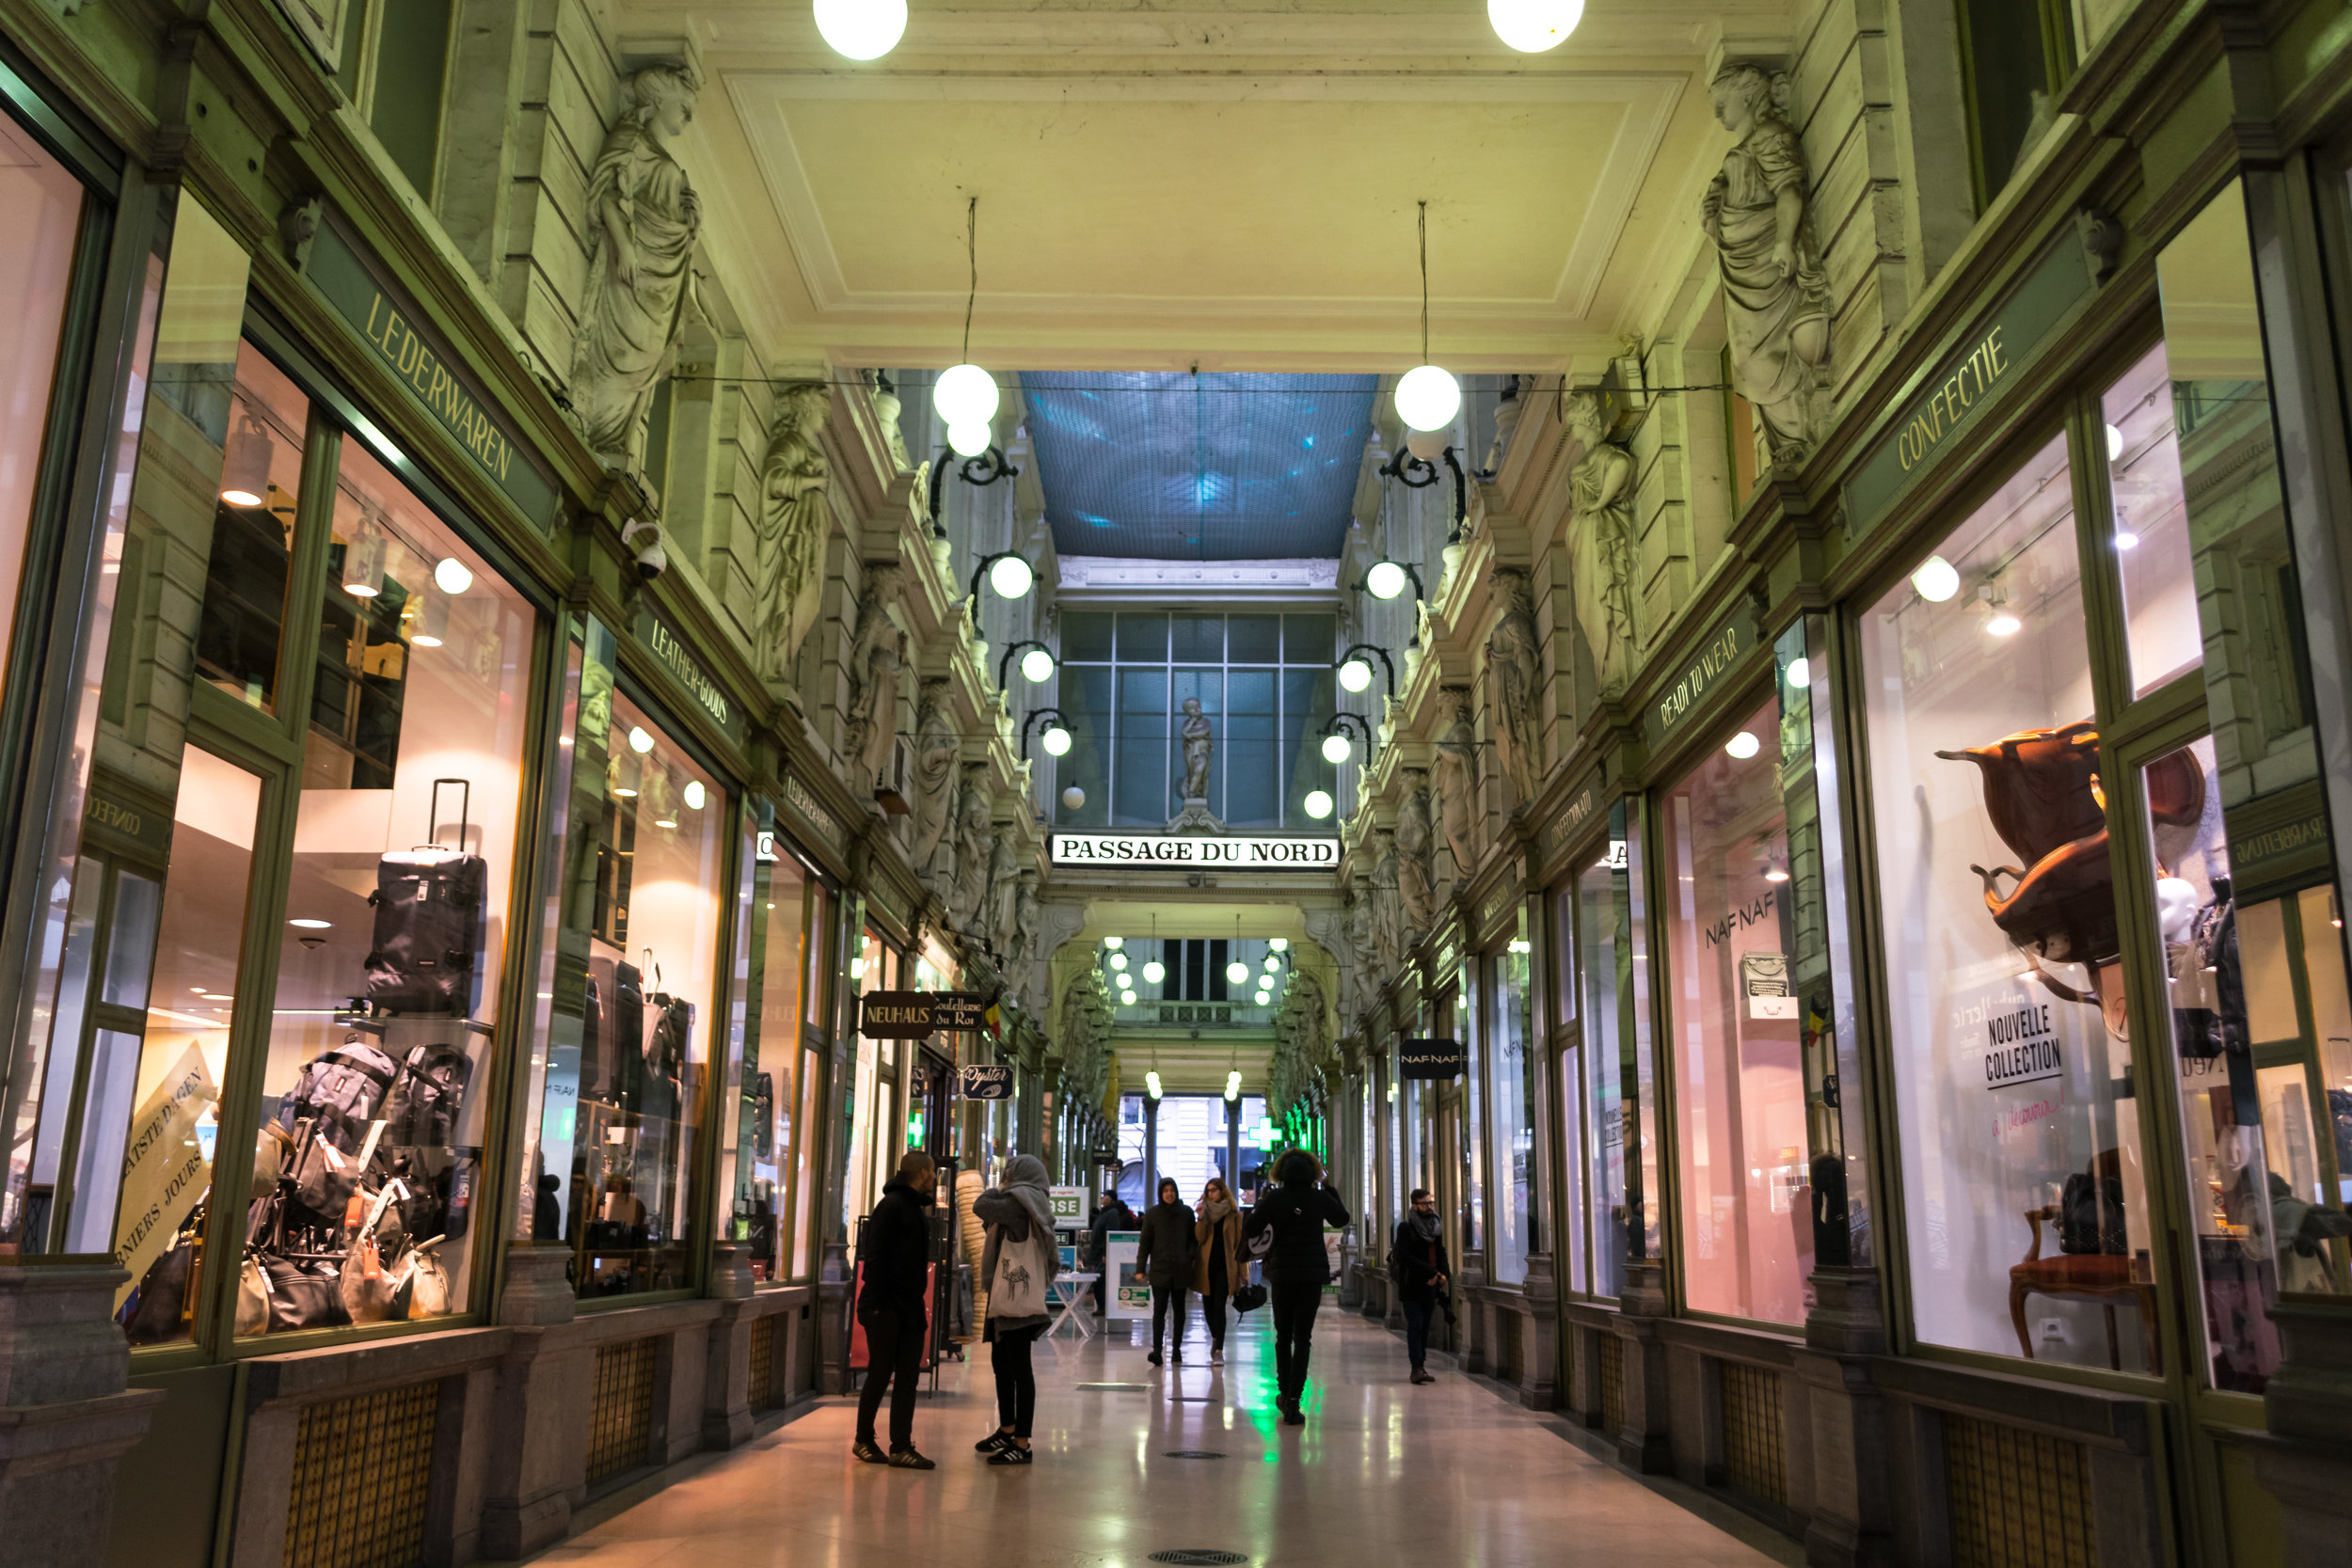 Passage du Nord, another elegant 19th-century shopping arcade